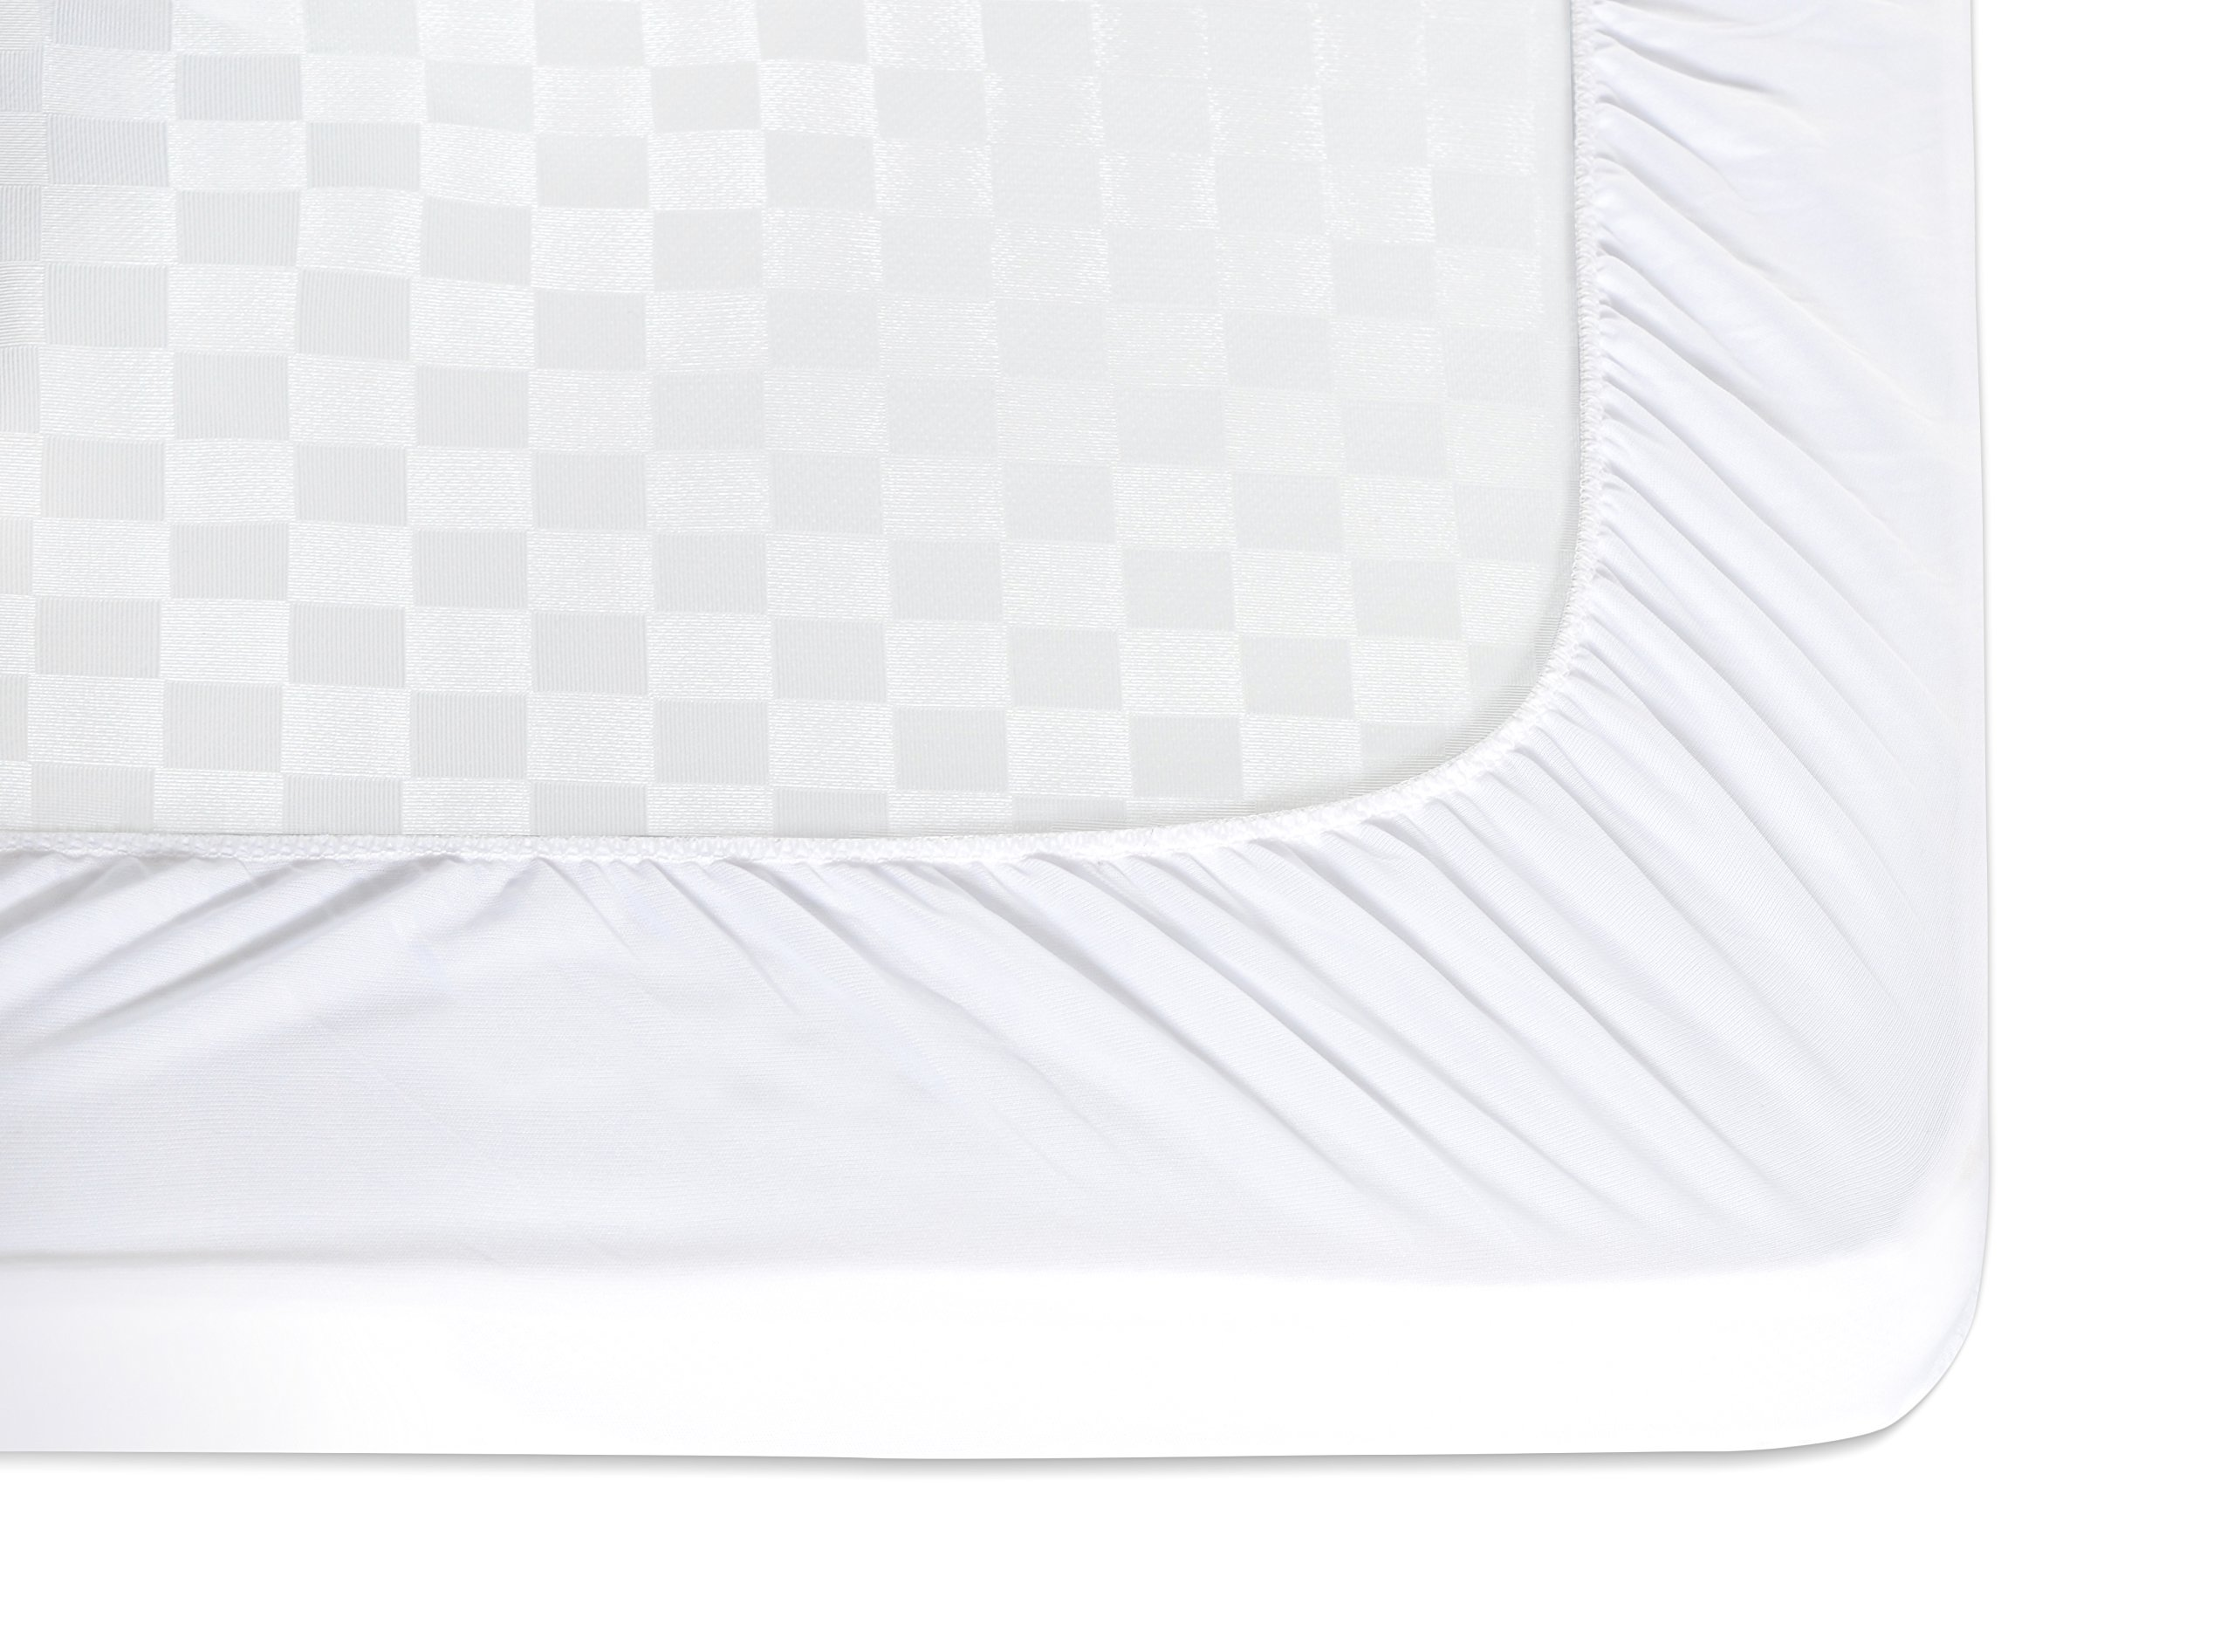 MILLIARD Quilted, Waterproof Crib & Toddler Mattress Protector Pad, Premium Hypoallergenic Fitted Cover with Extra Padding 28x52x6 by Milliard (Image #7)